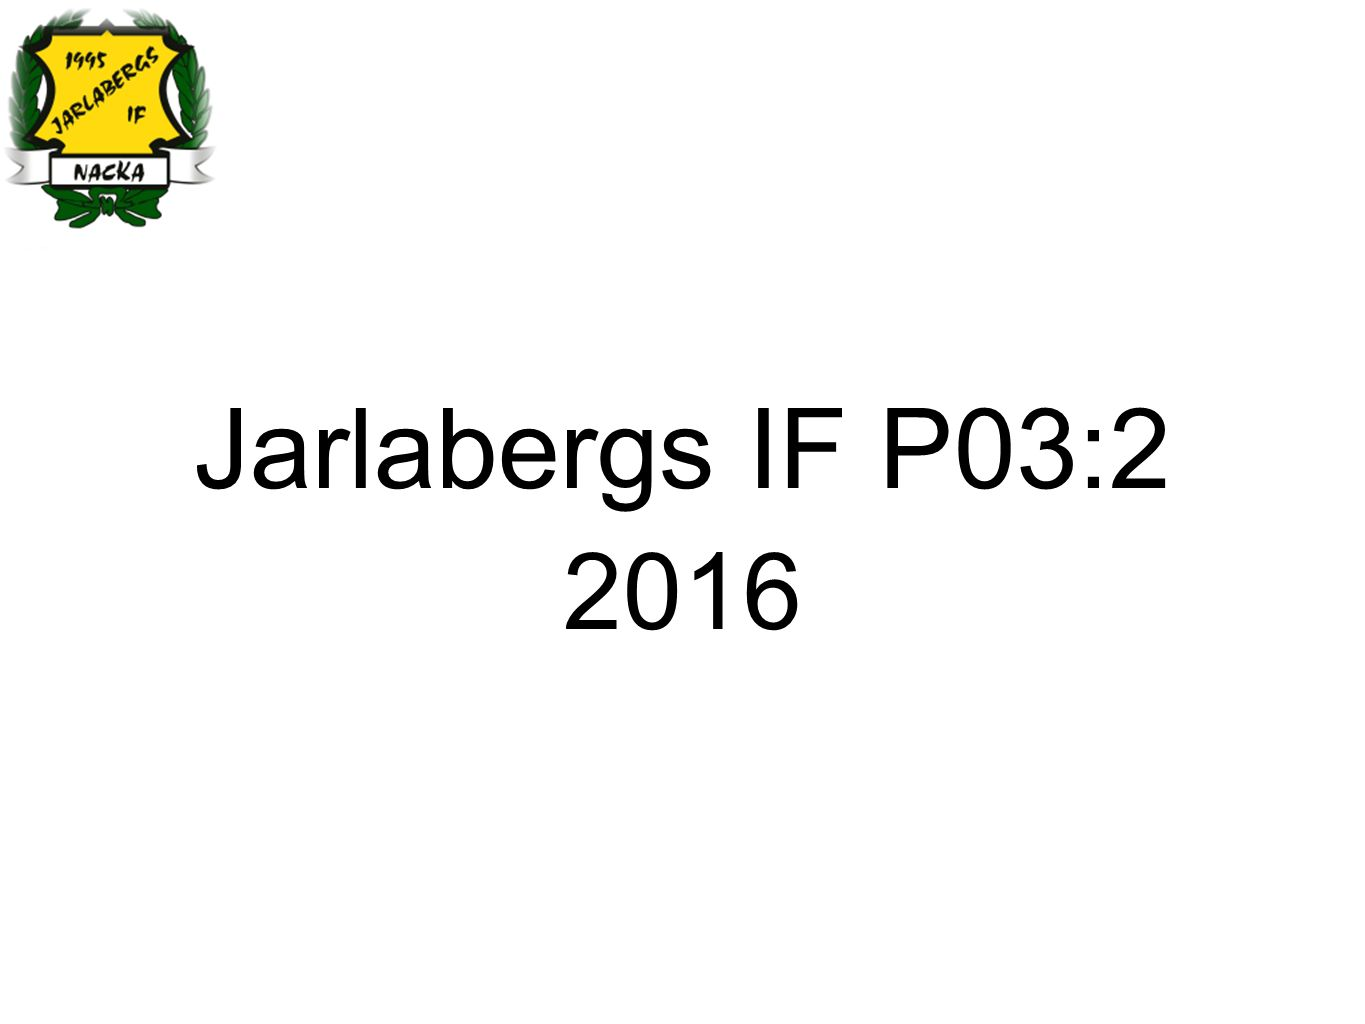 Jarlabergs IF P03:2 2016